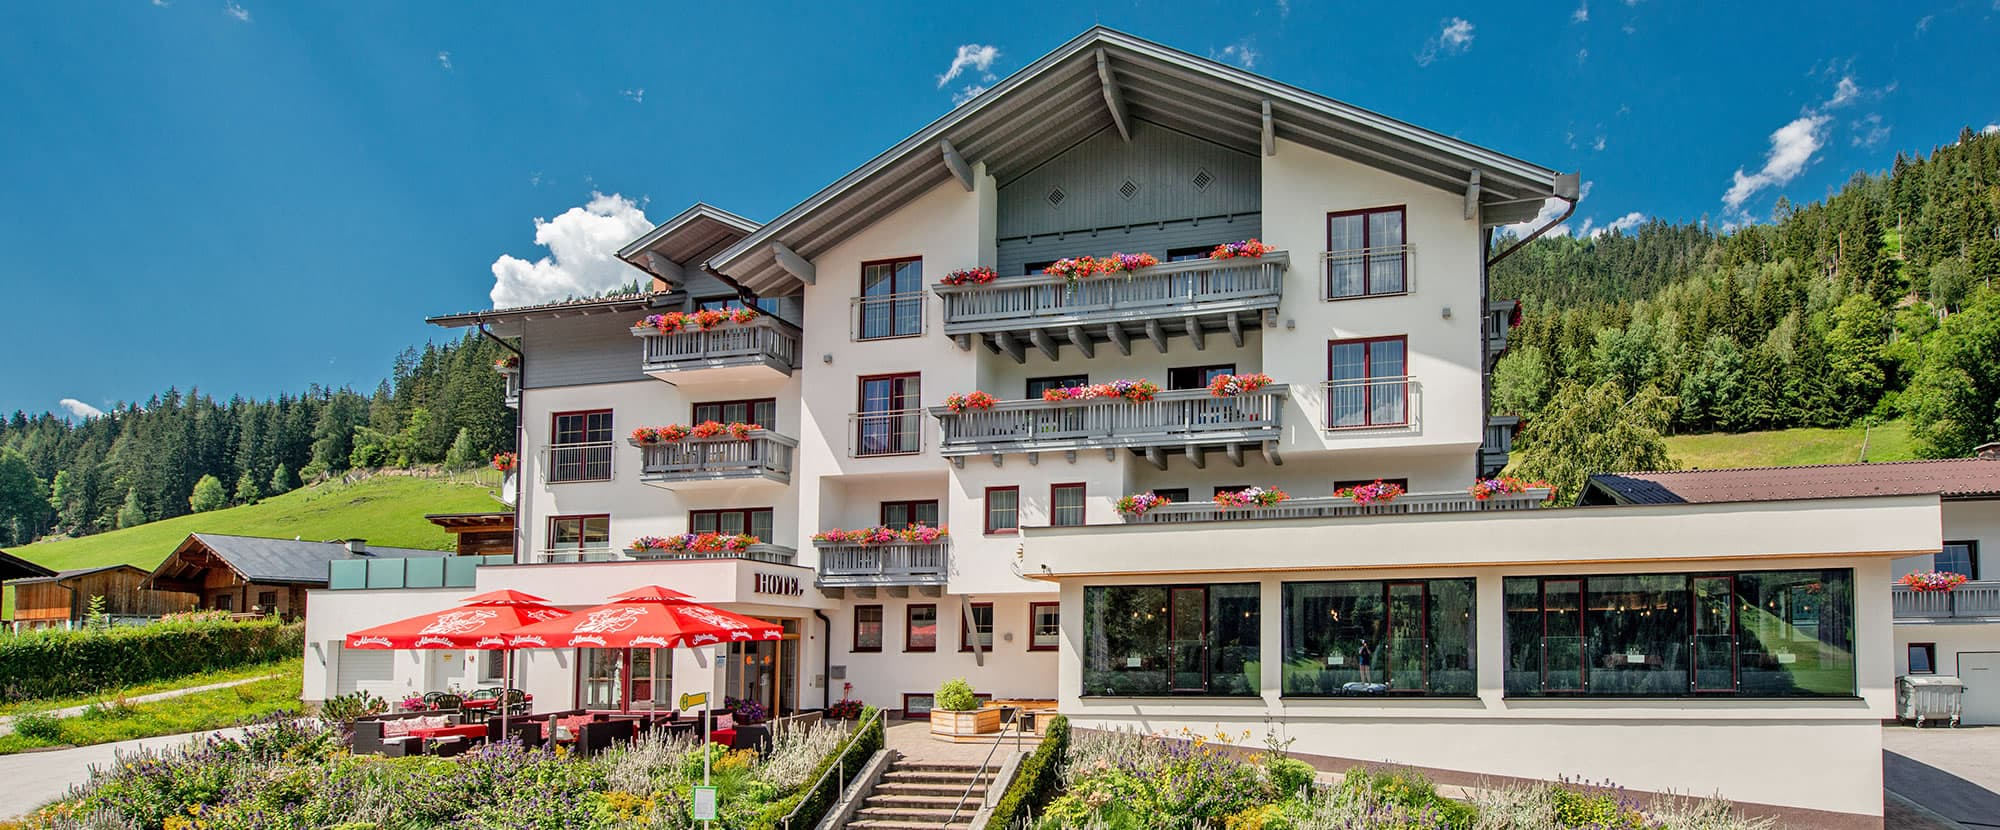 Schladming Hotel Sonnschupfer | Good value 3 star Superior Hotel in the Schladming-Dachstein area -> perfect for your summer holiday in Austria